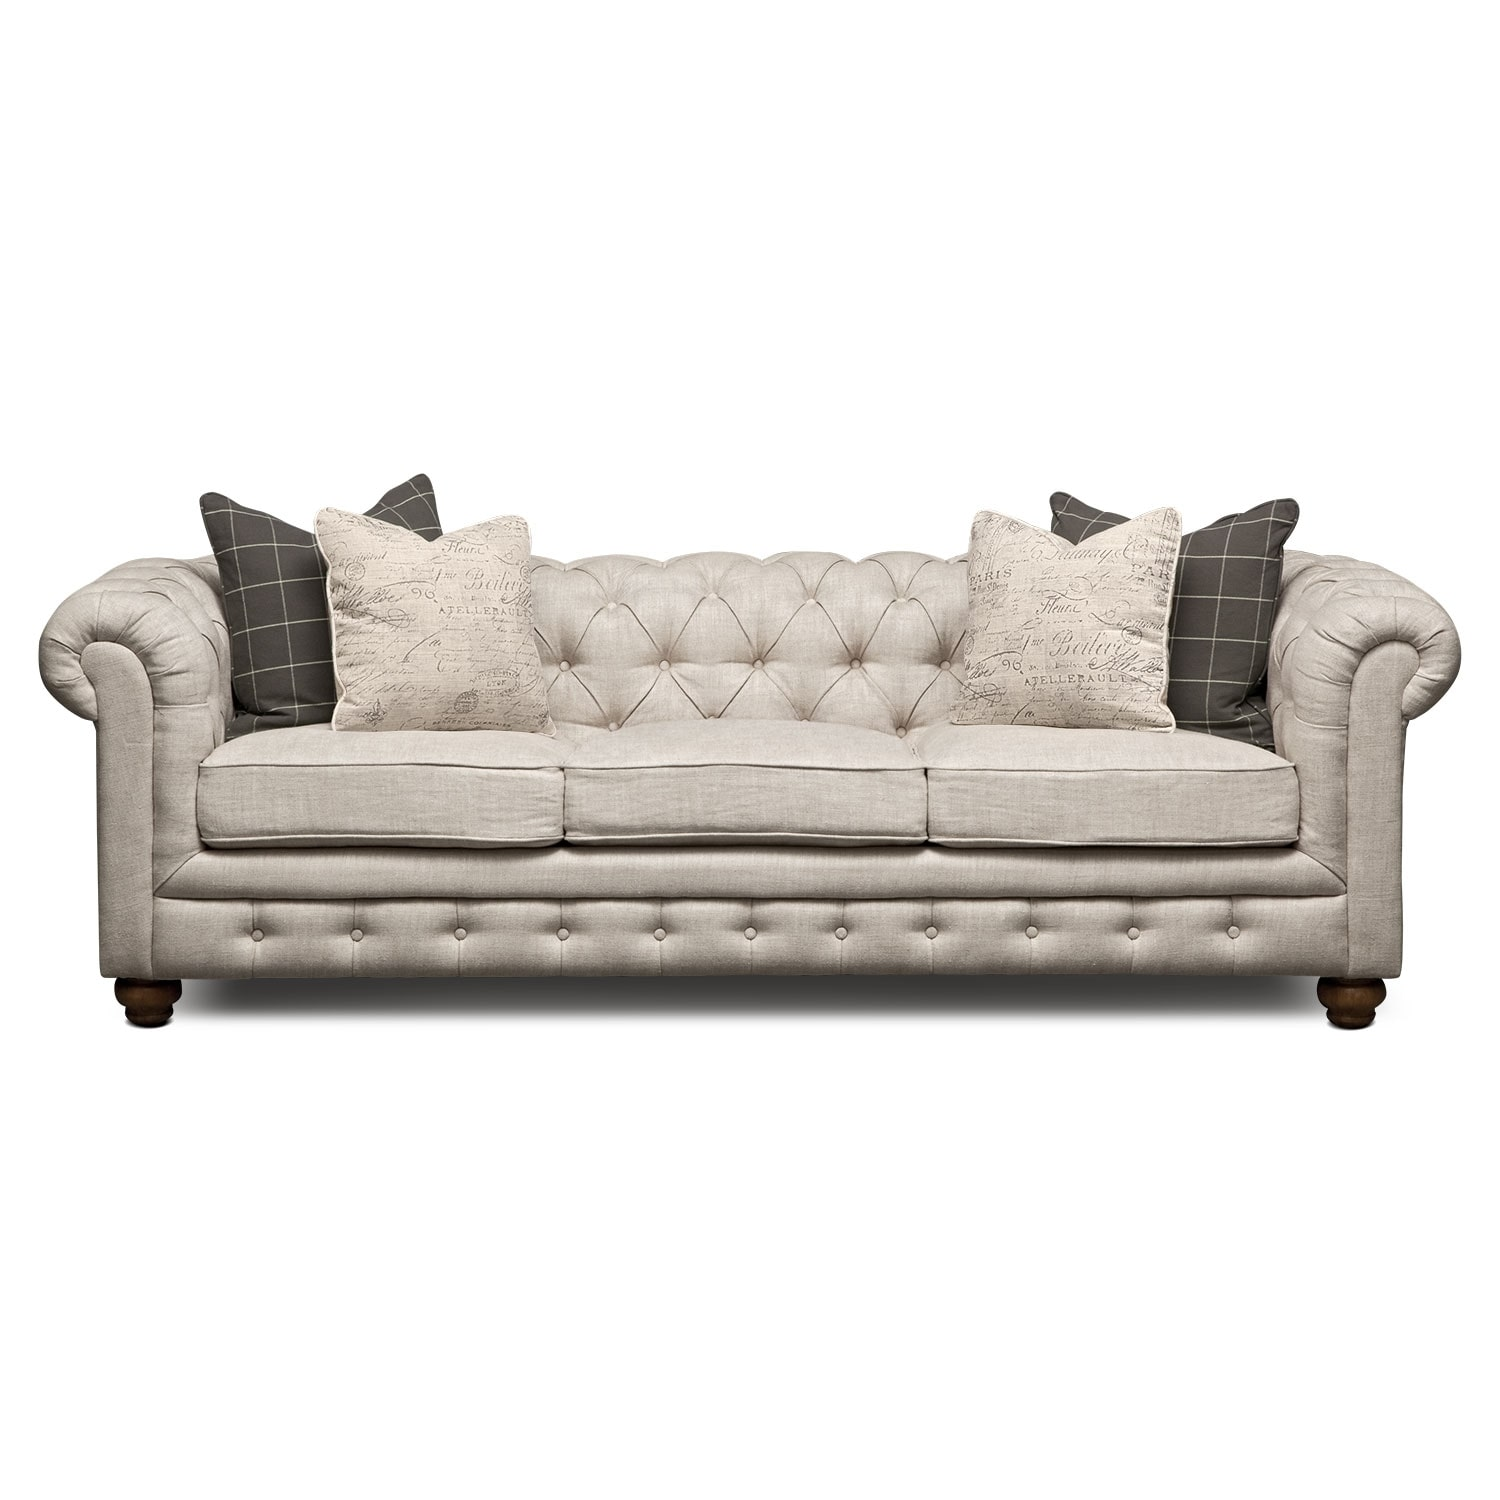 American signature sofa american signature sofa bed for American signature couch